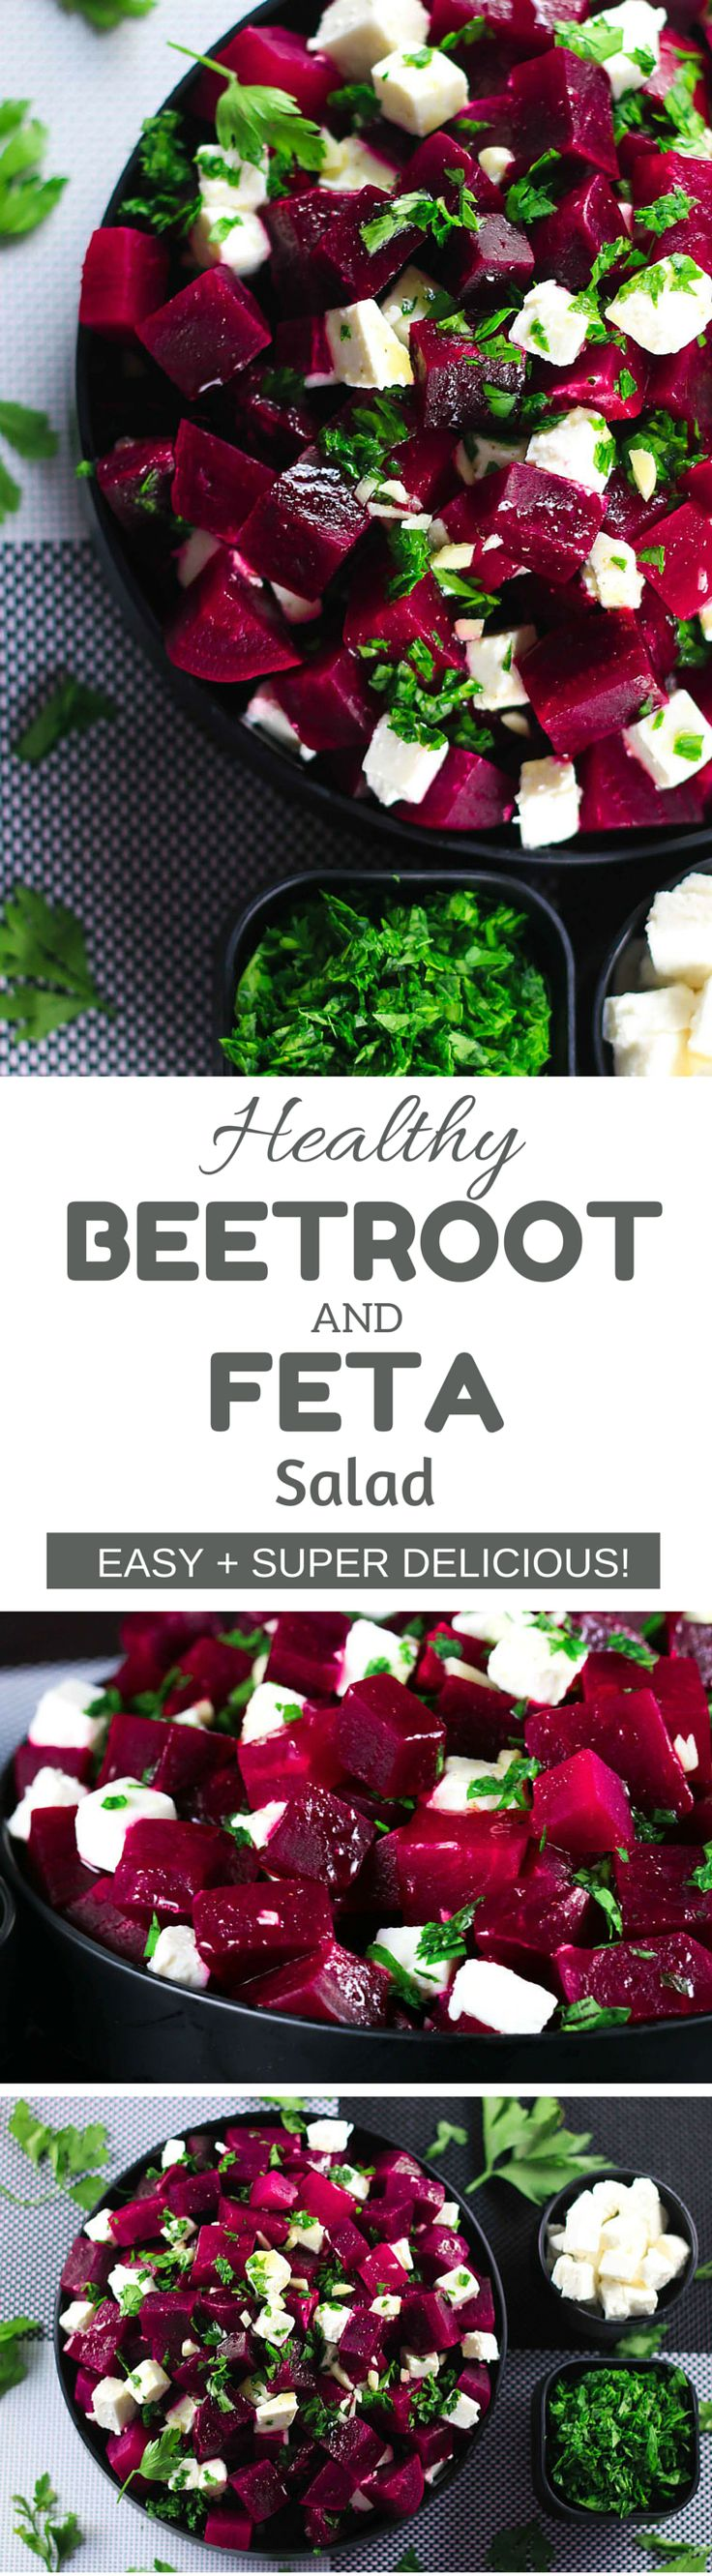 Healthy Beetroot and Feta Salad Recipe - This salad has the perfect balance of sweet and salty from the beetroot and feta cheese - SO good! Super | ScrambledChefs.com